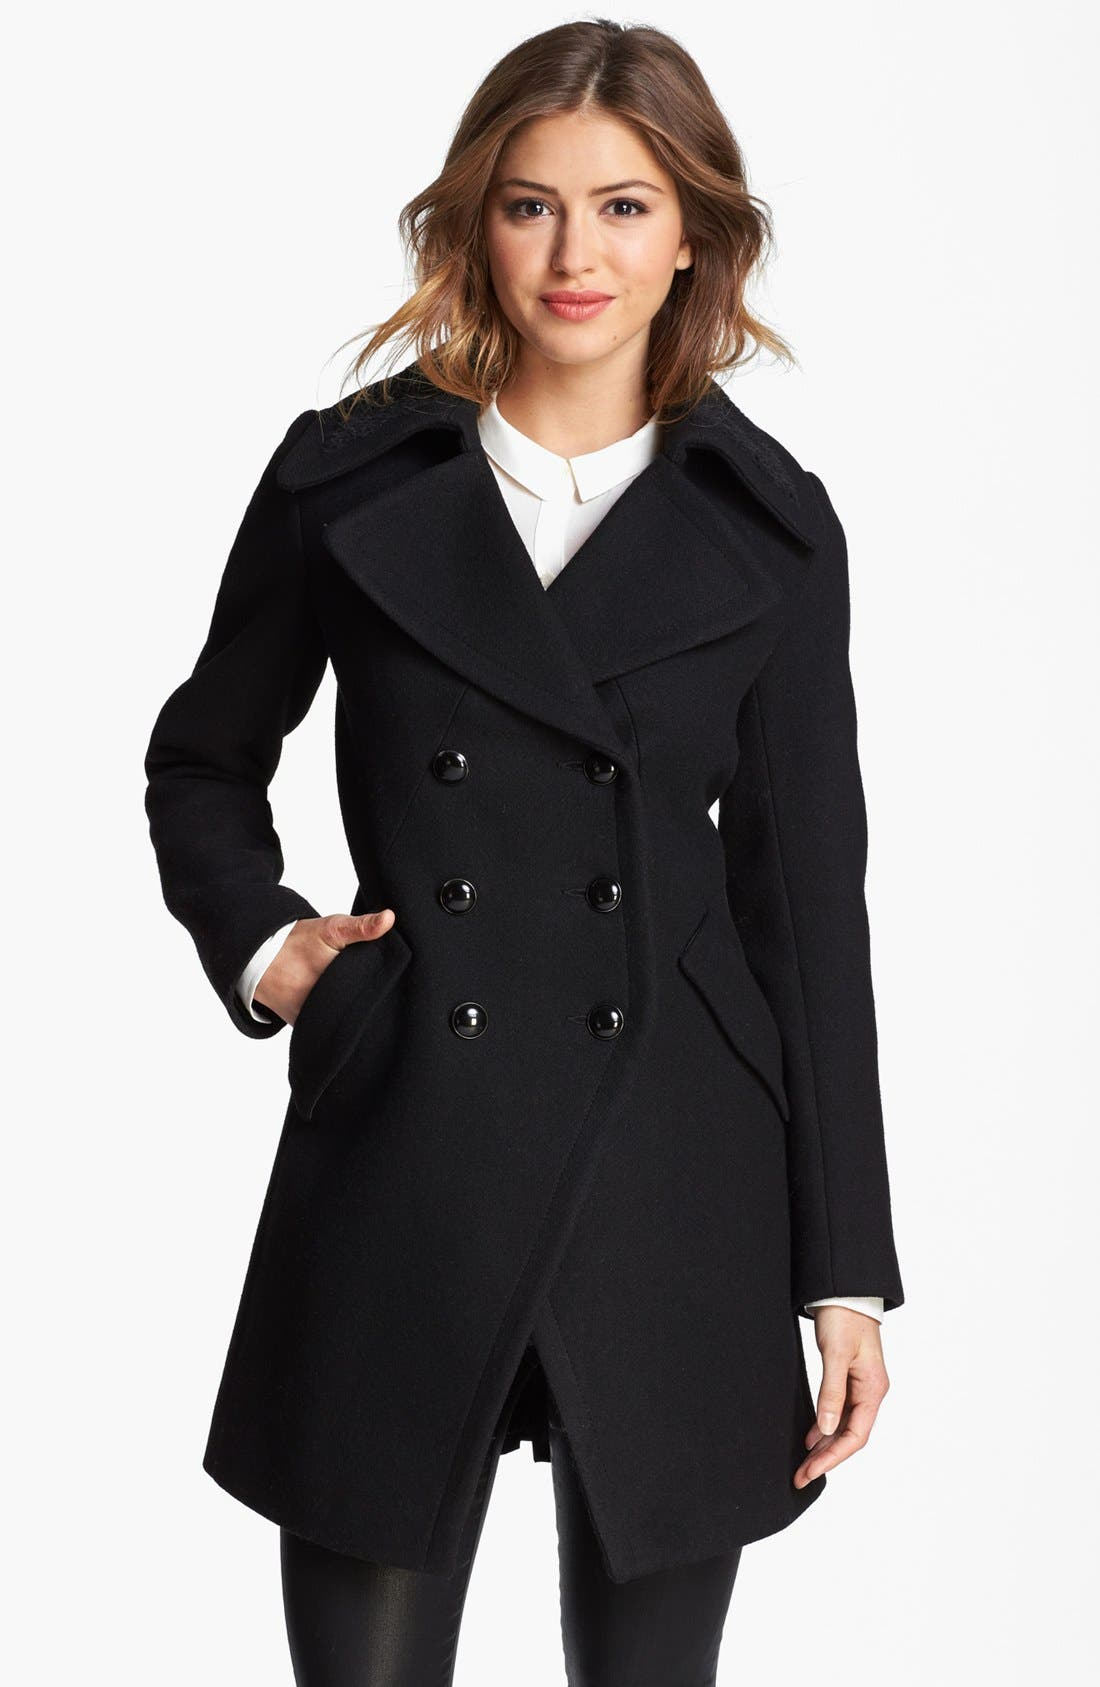 Main Image - Trina Turk Double Breasted Officer's Coat (Regular & Petite)